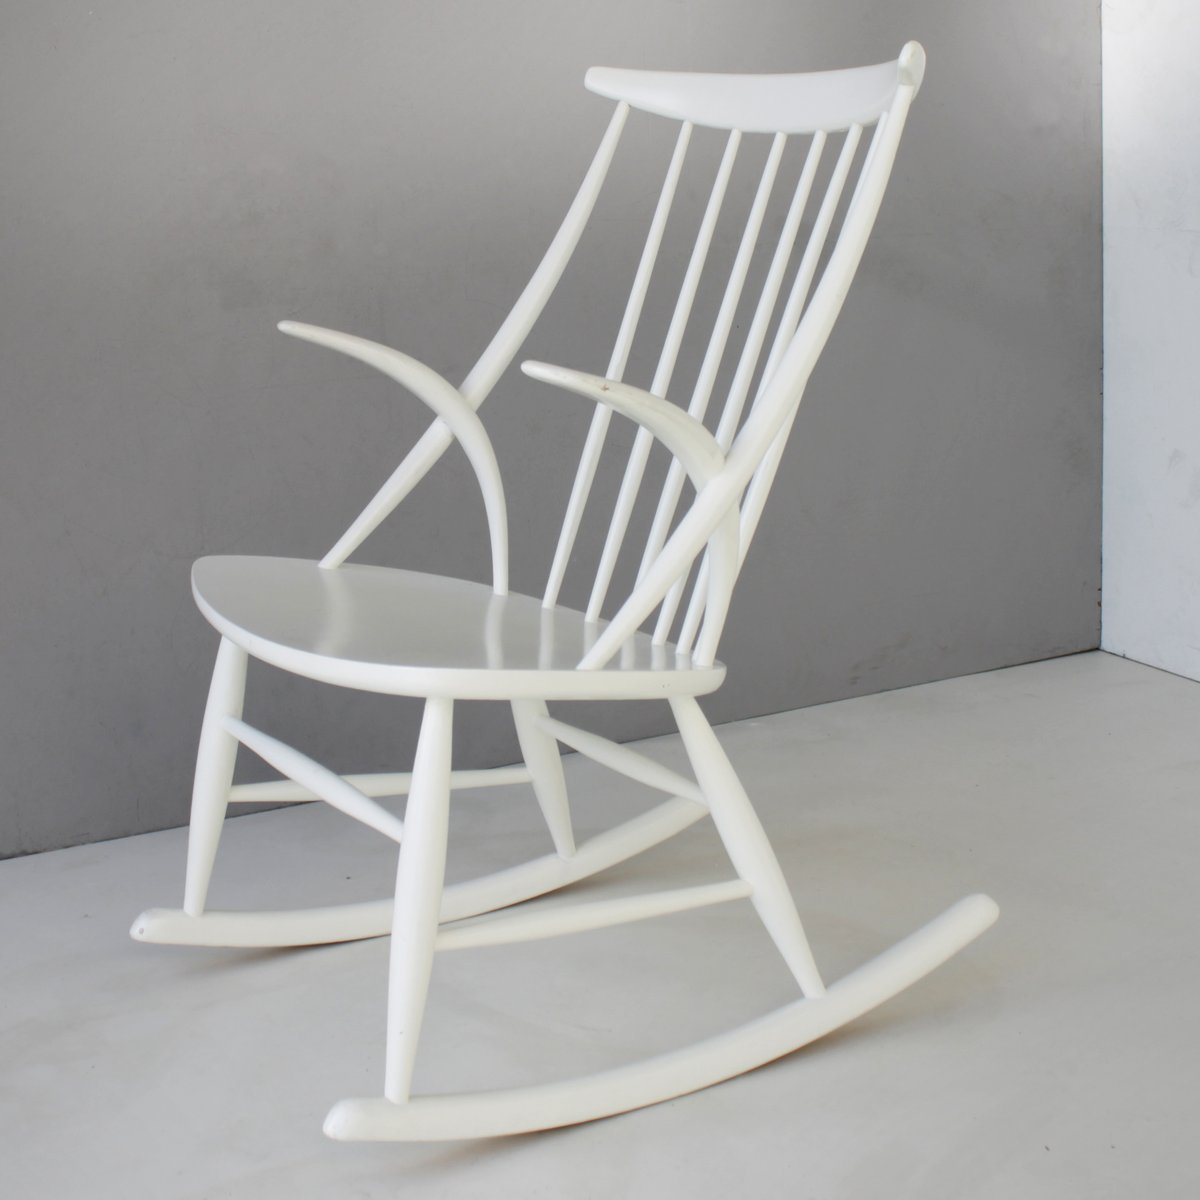 Danish Rocking Chair Vintage Danish Rocking Chair By Illum Wikkelsø For N